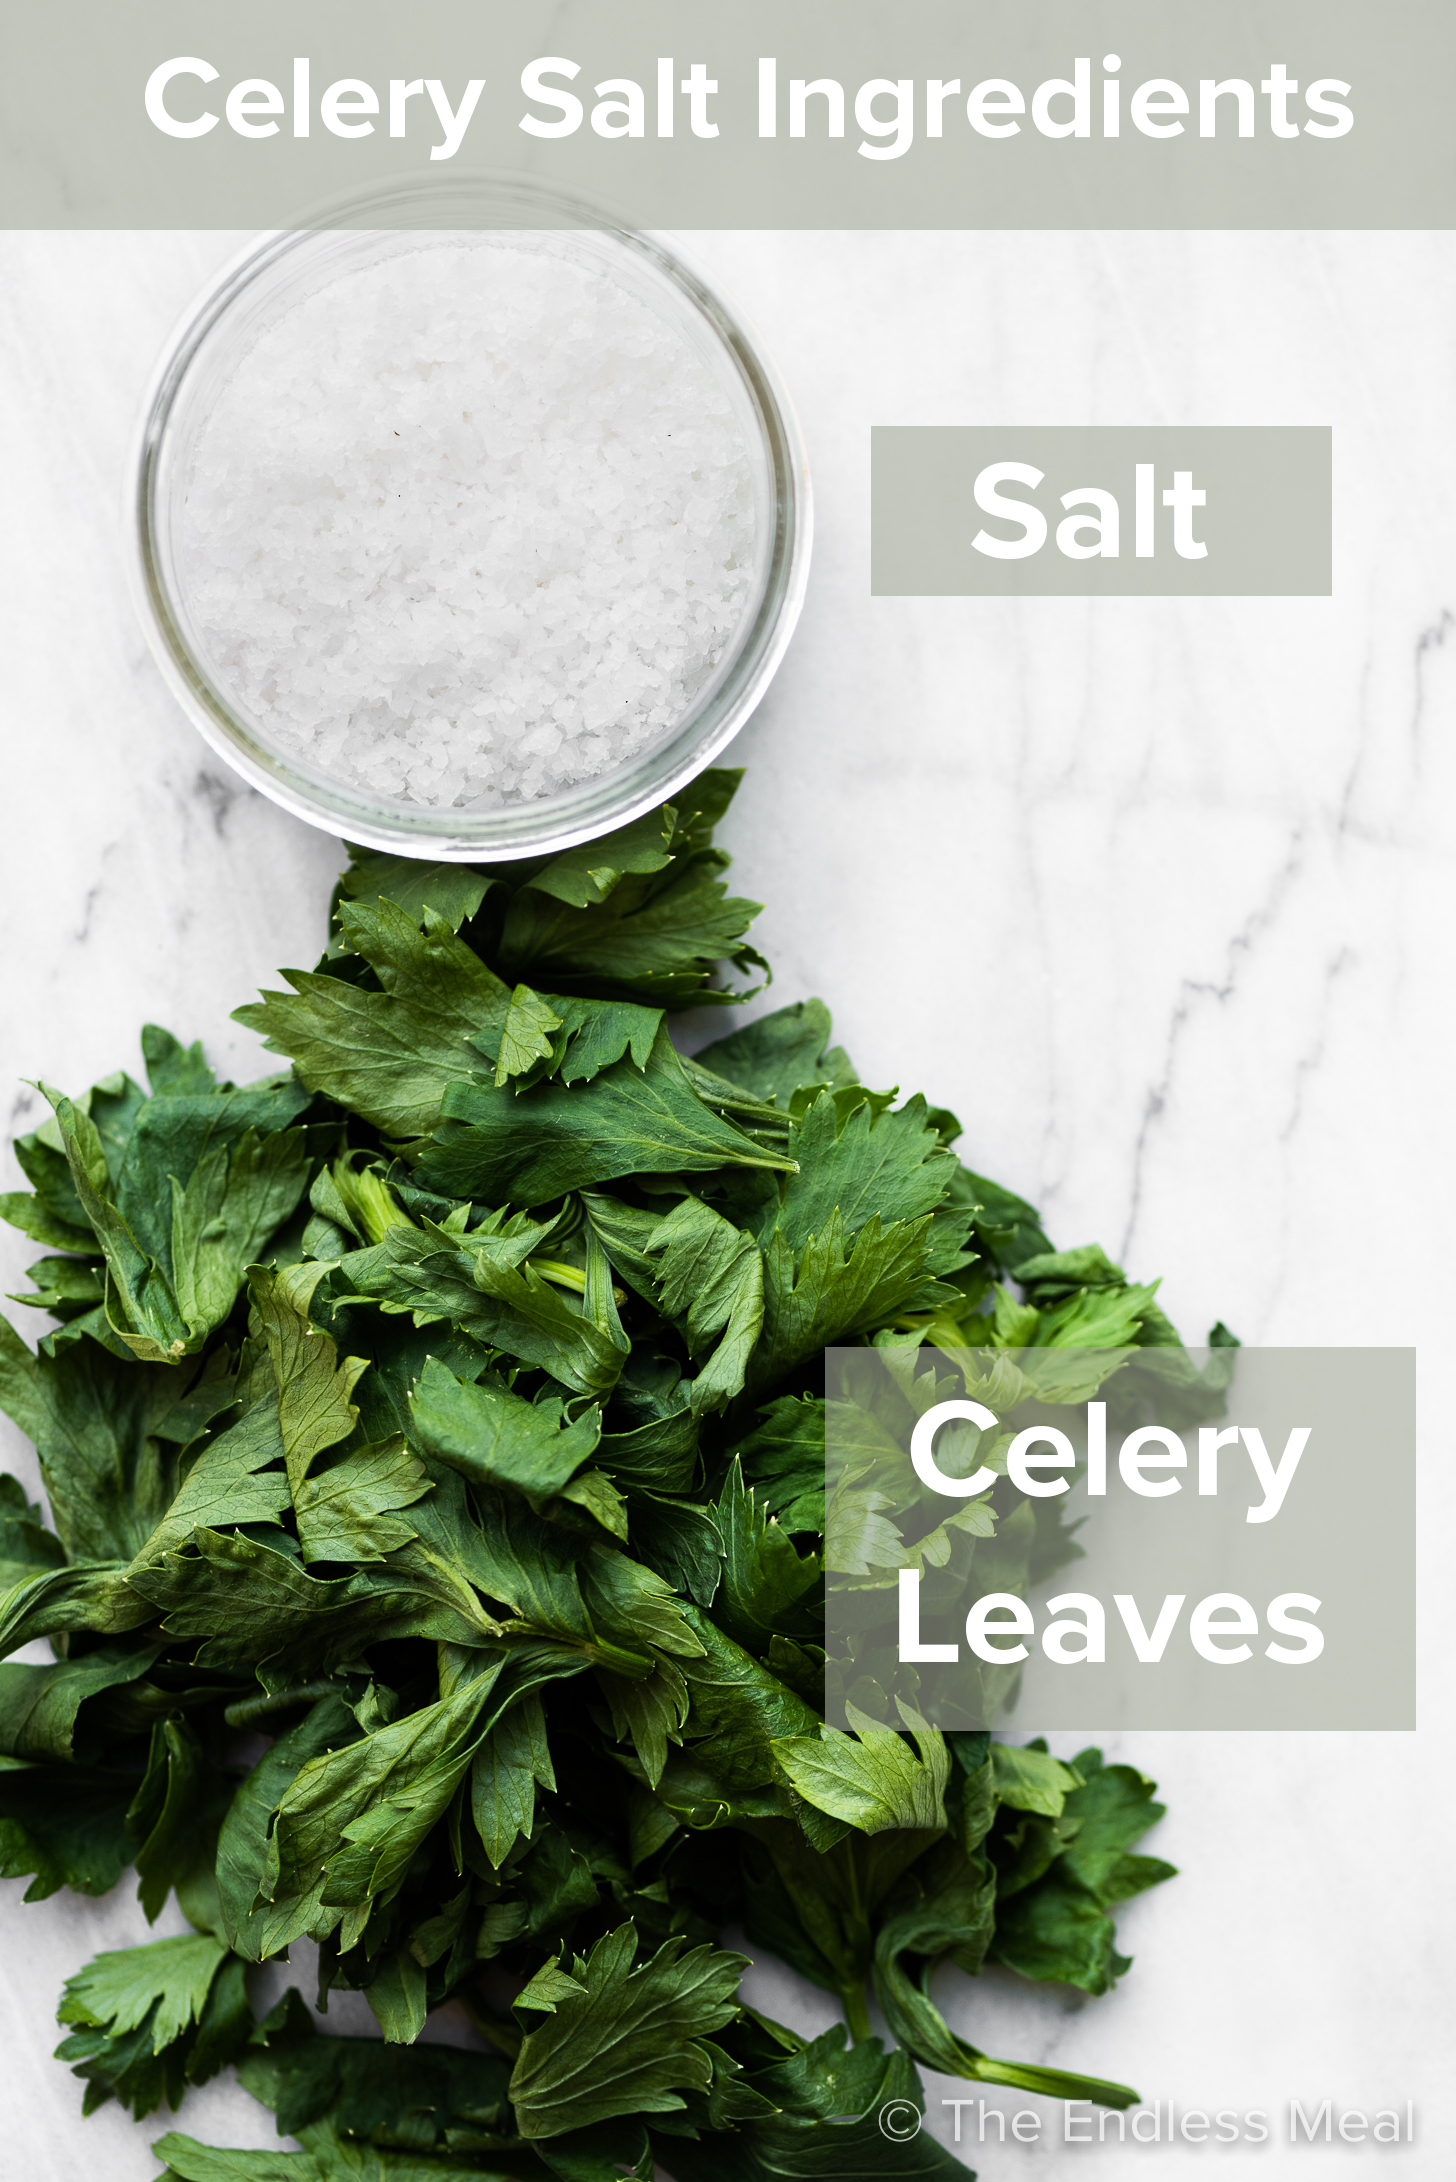 The ingredients to make this celery salt recipe with ingredient titles.